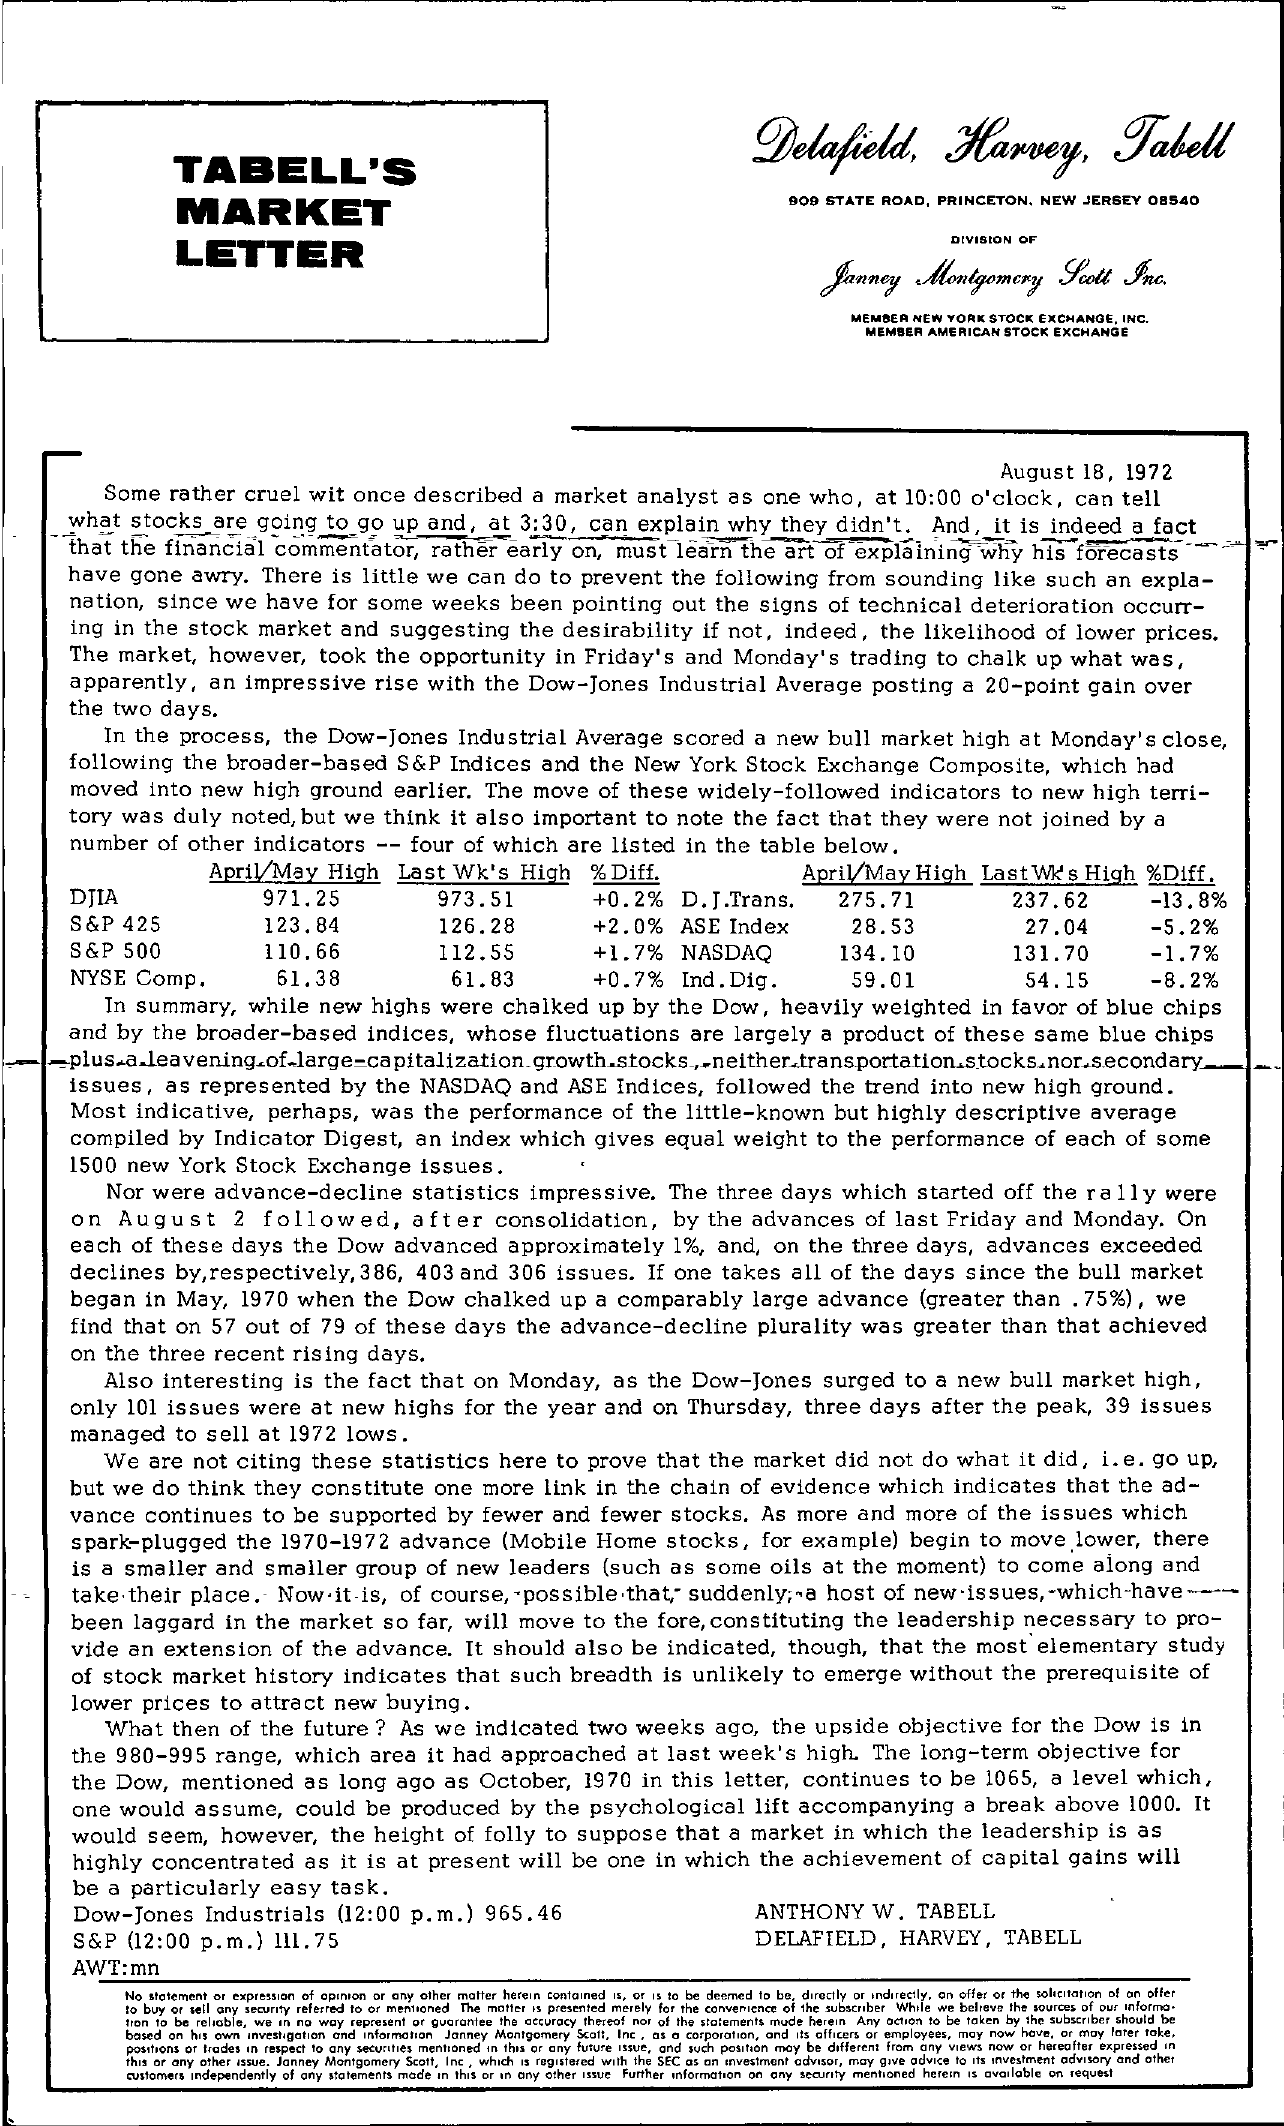 Tabell's Market Letter - August 18, 1972